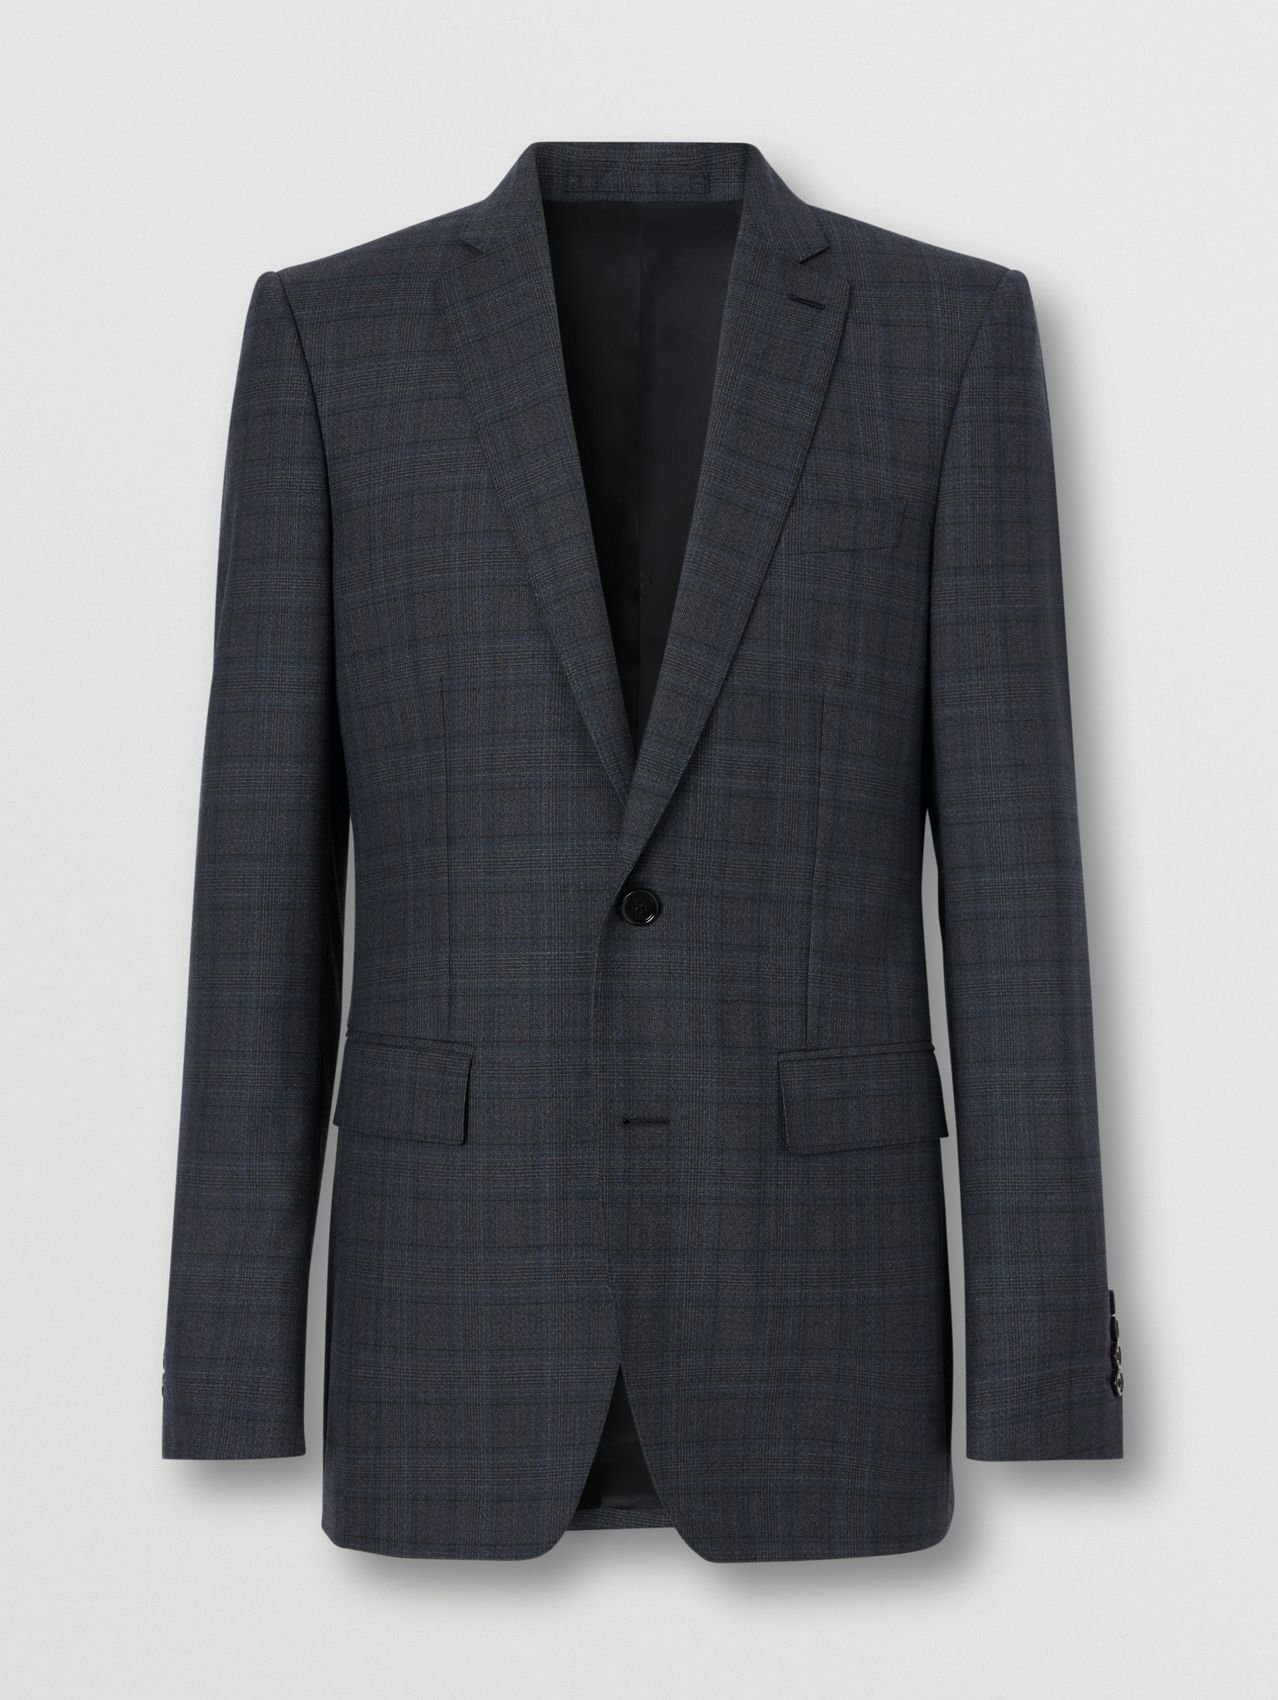 English Fit Check Wool Suit in Steel Blue